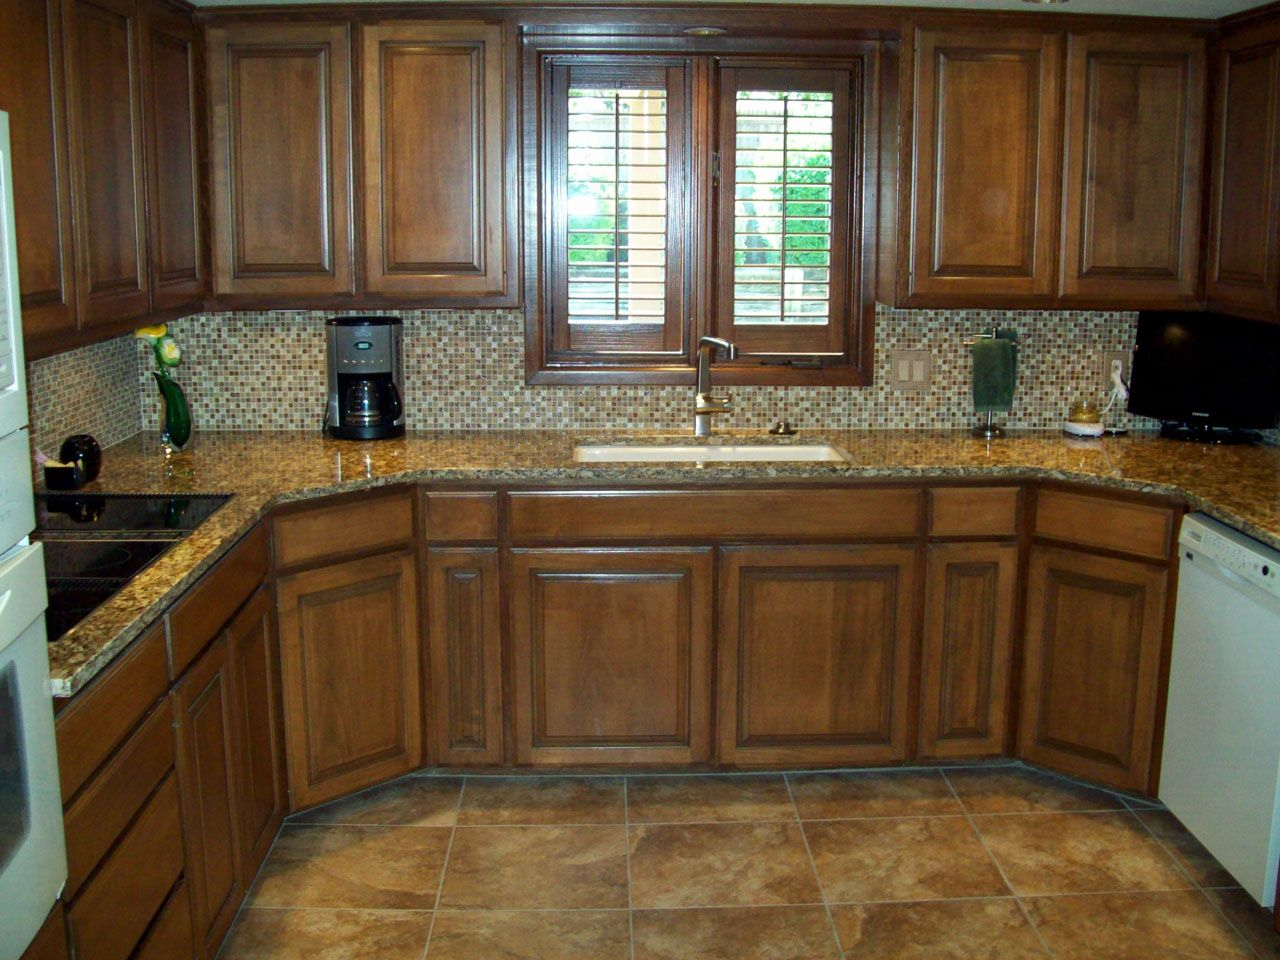 Remodelling Kitchen Kitchen Renovation Ideas Kitchen Remodeling Ideas Kitchen Design